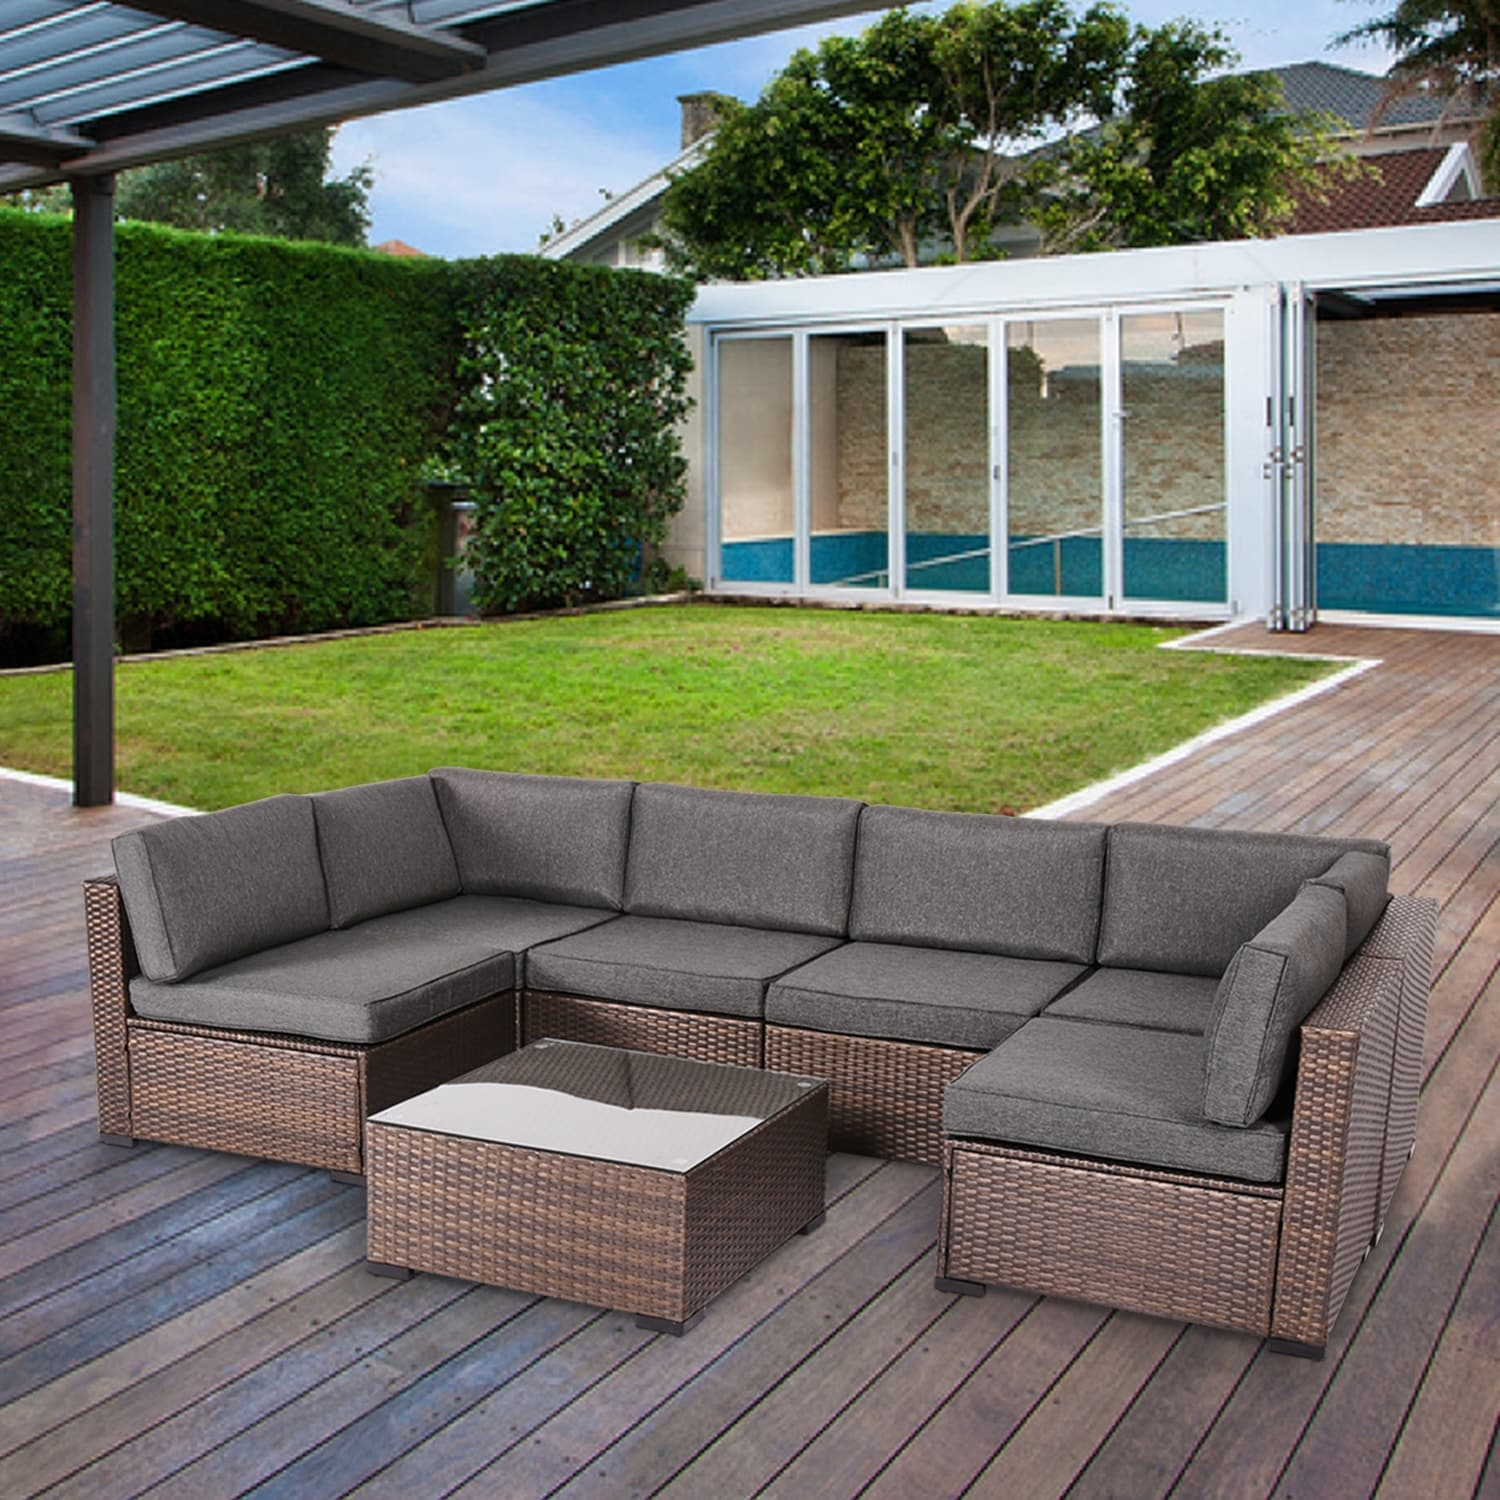 rumber 7 piece rattan wicker outdoor sectional sofa conversation set by havenside home